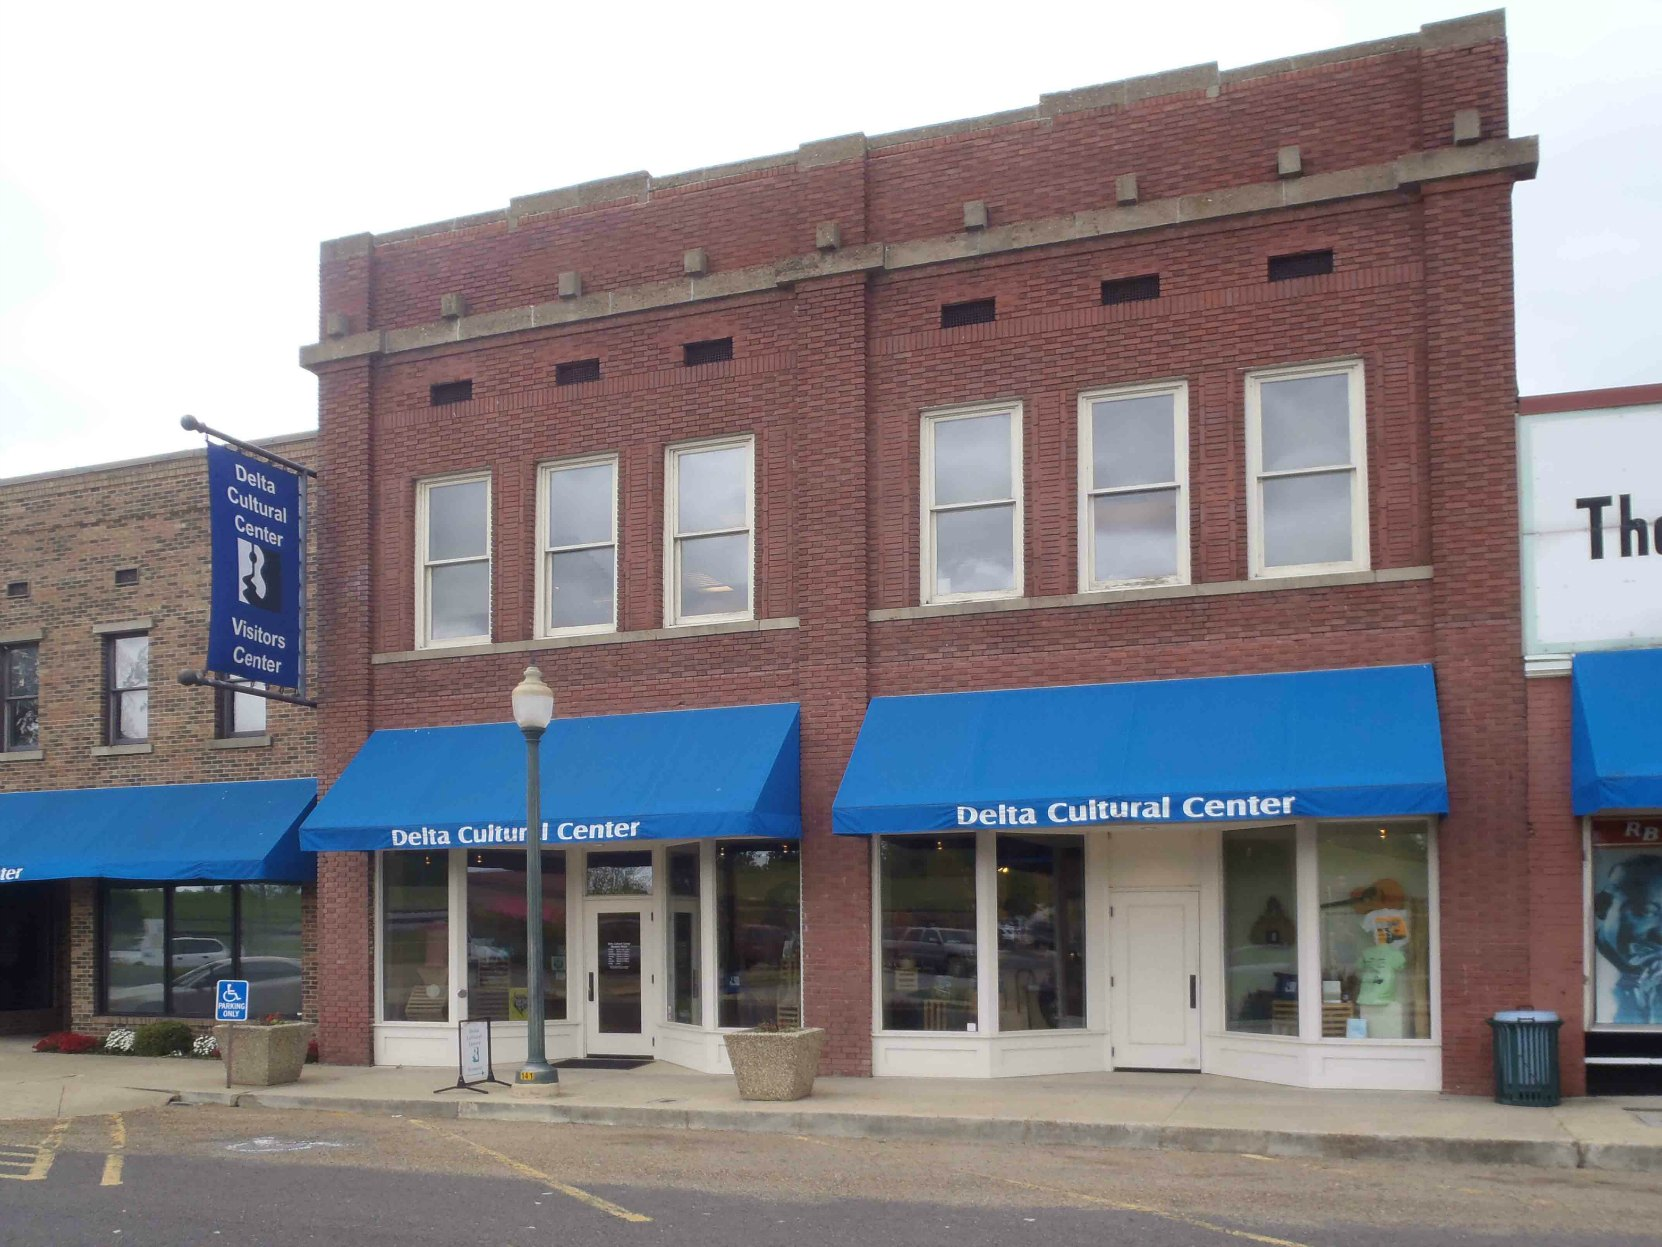 This building is now part of the Delta Cultural center on Cherry Street in downtown Helena, Arkansas